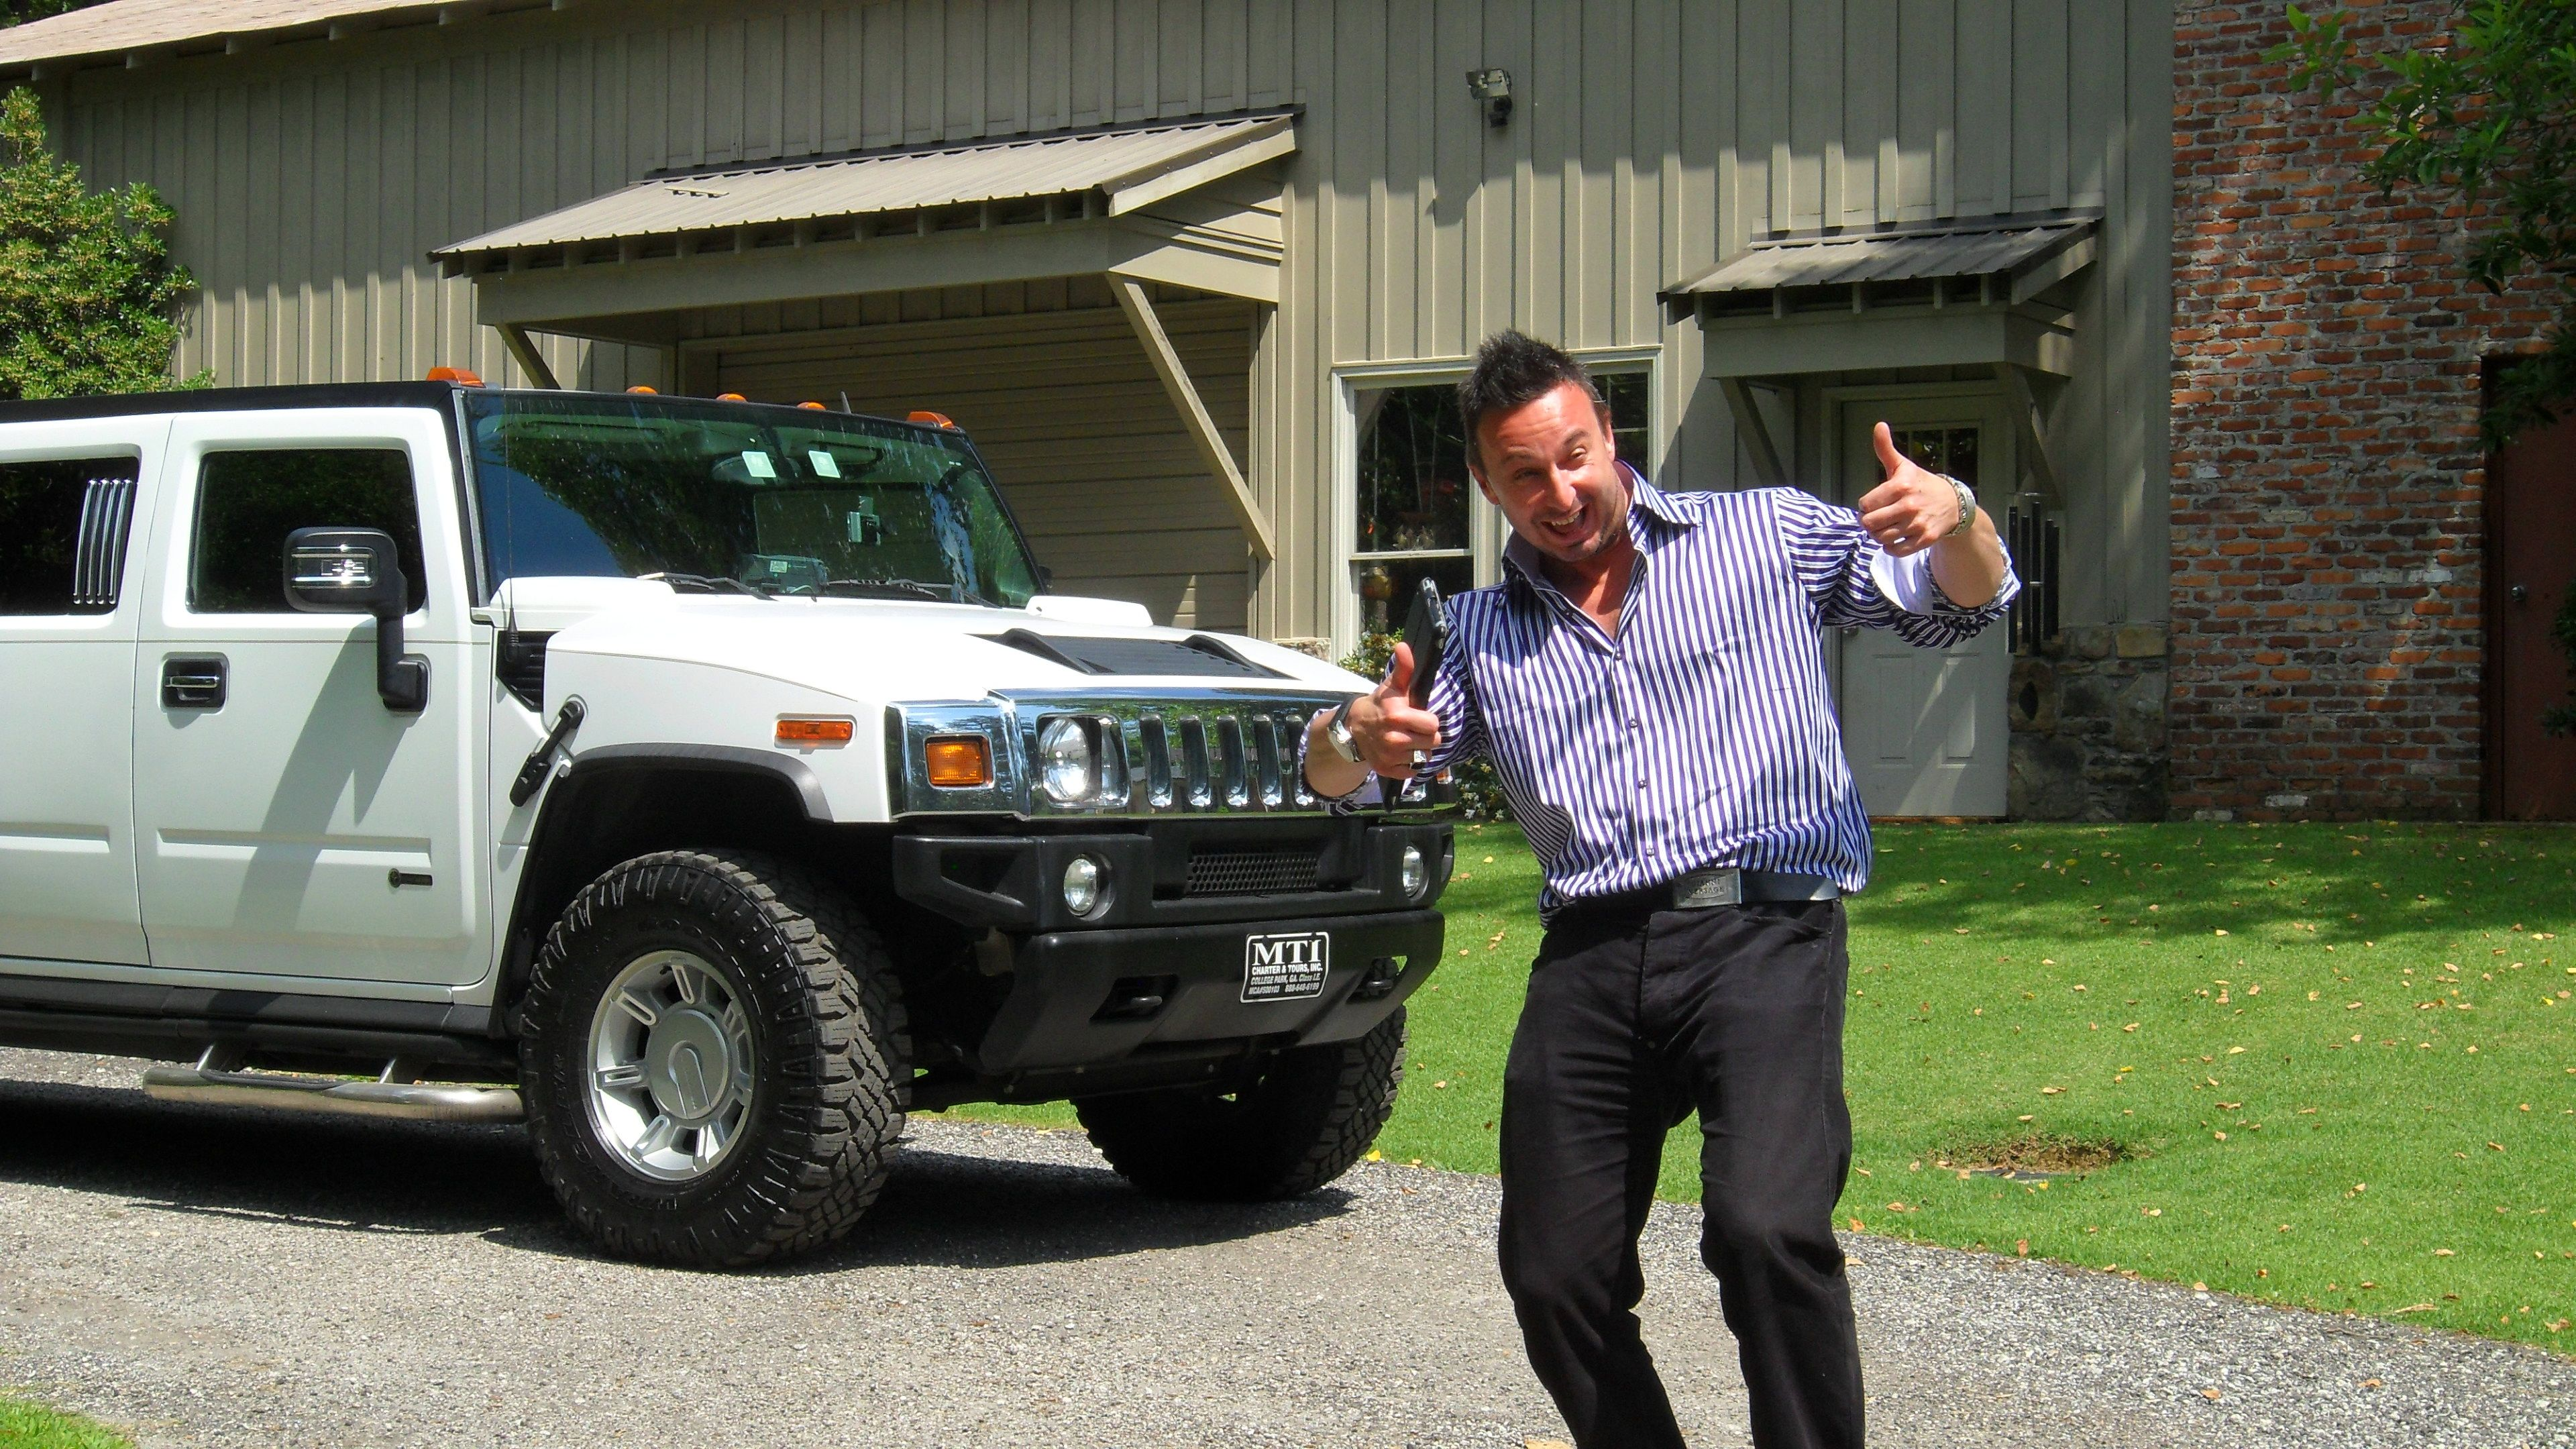 Simon Stepsys checking out the stretch limo at Tom s place